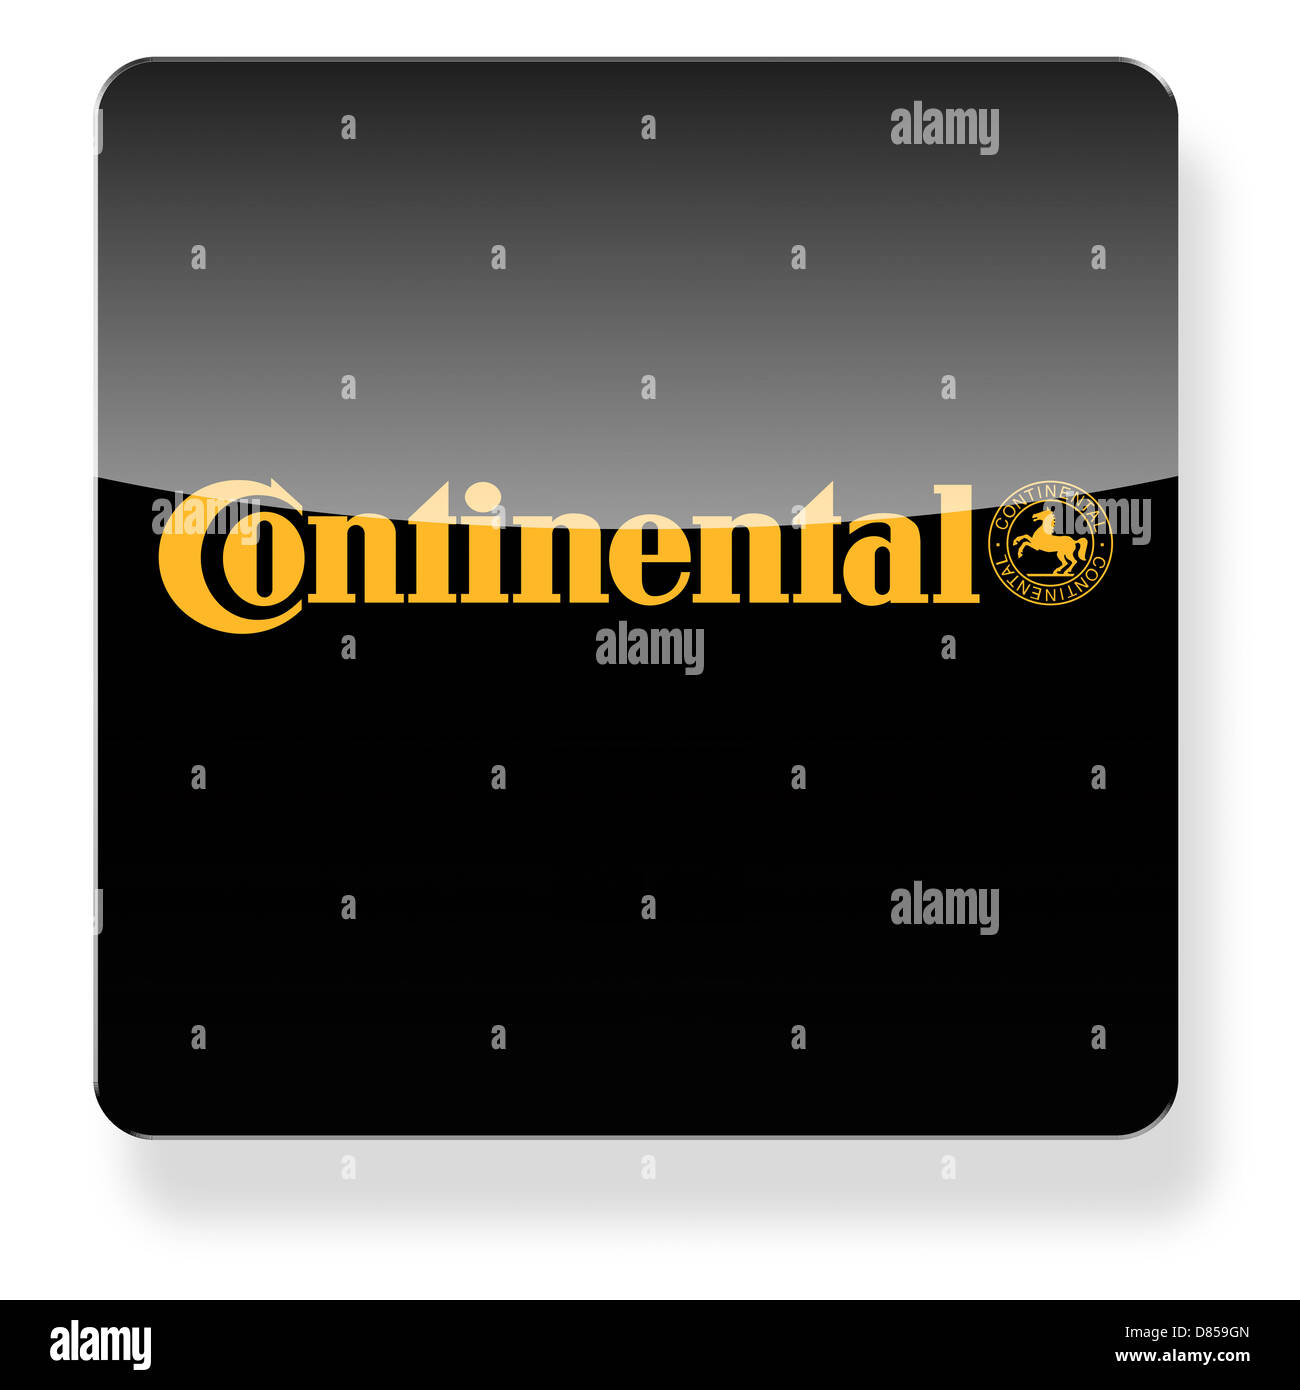 Continental tyres logo as an app icon. Clipping path included. - Stock Image